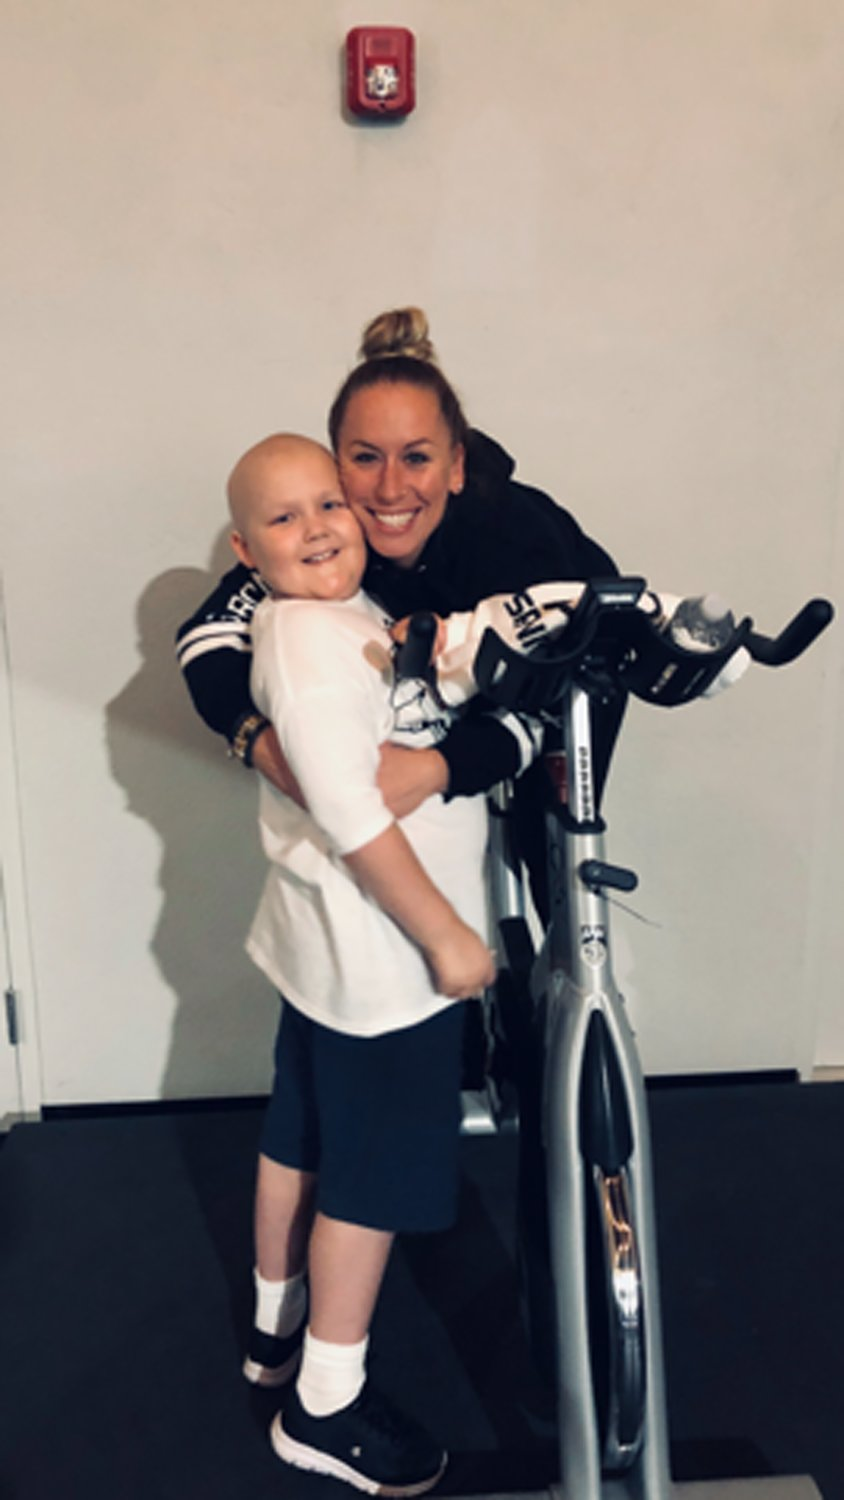 Barbara Larrea dedicated the 2019 Cycle for Strength event to her nephew Brody Kuenzler, 9, who lives with Ewing's sarcoma, a rare form of bone cancer.